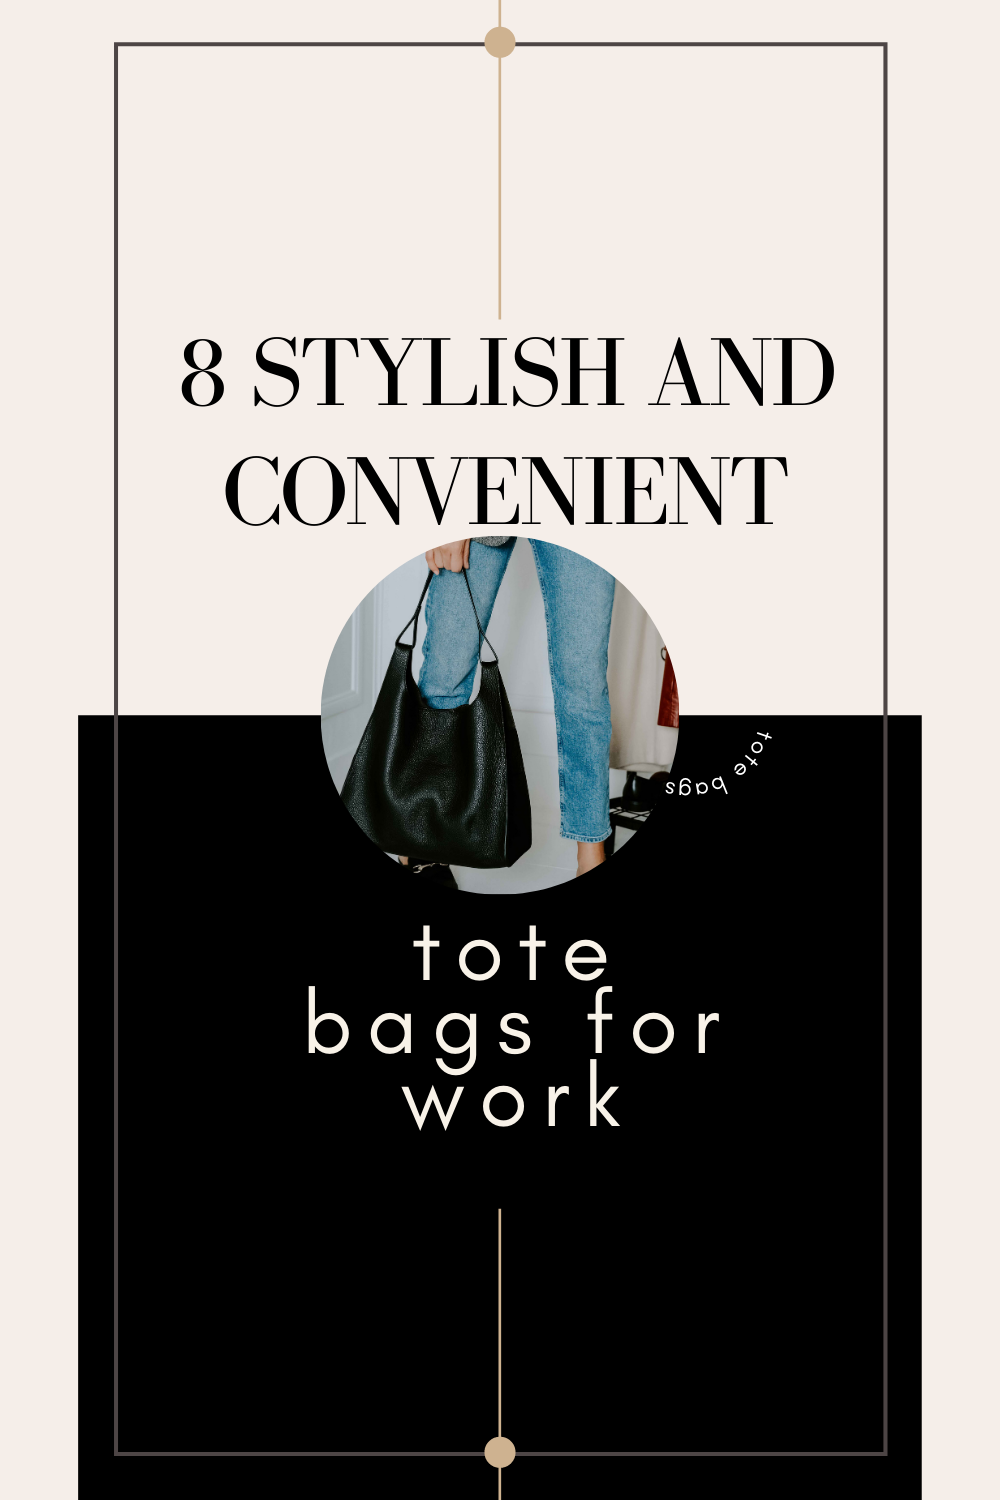 tote bags for work